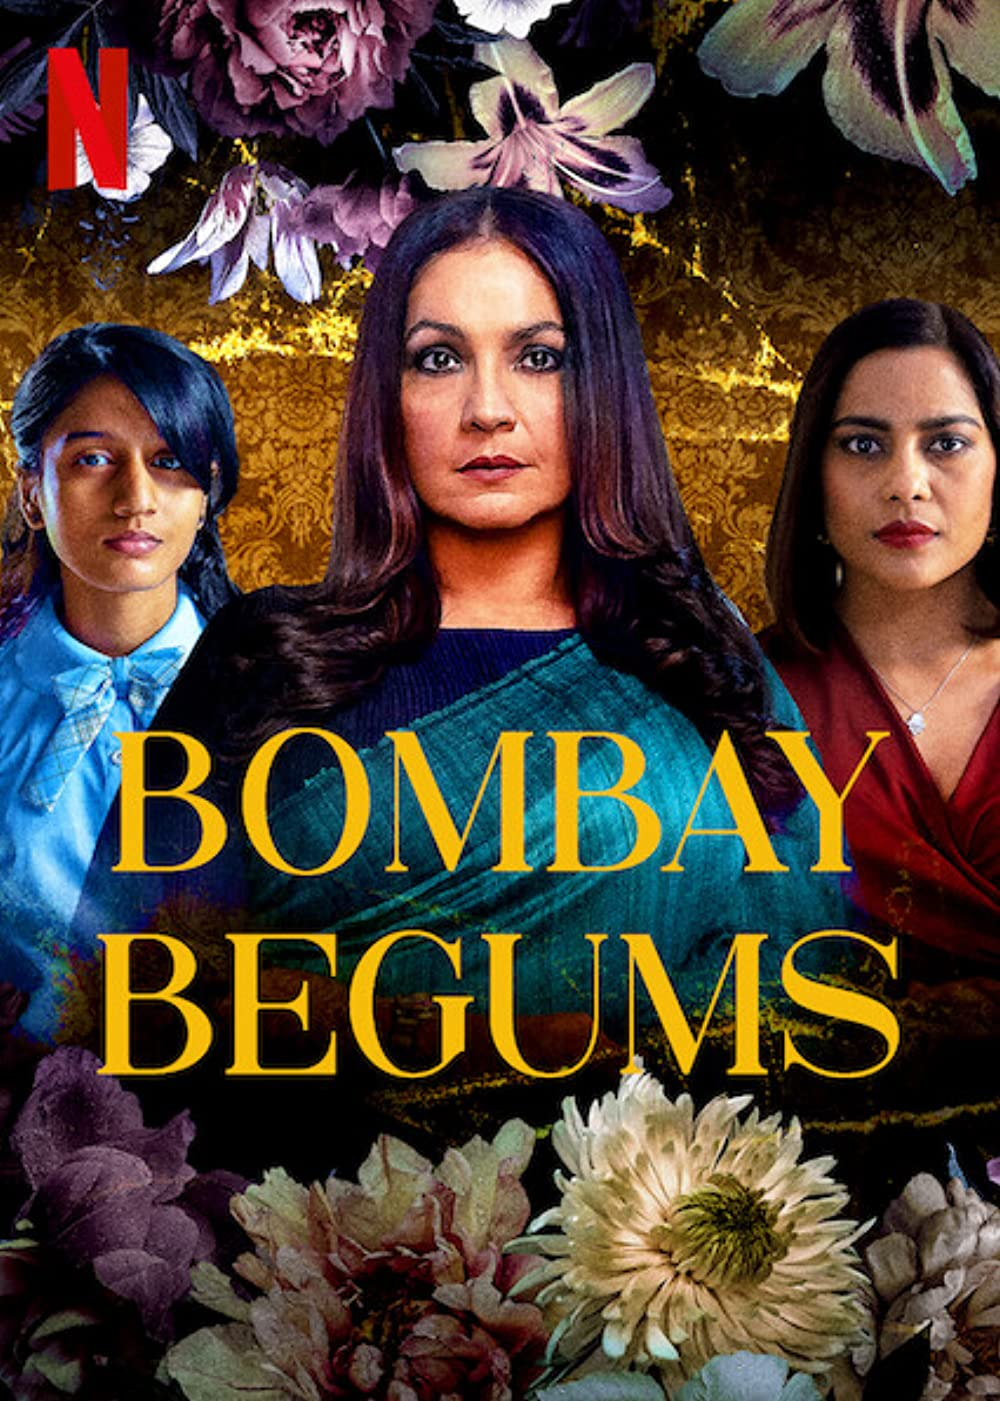 Bombay Begums 2021 S01 Hindi Netflix Original Complete Web Series 900MB HDRip Download